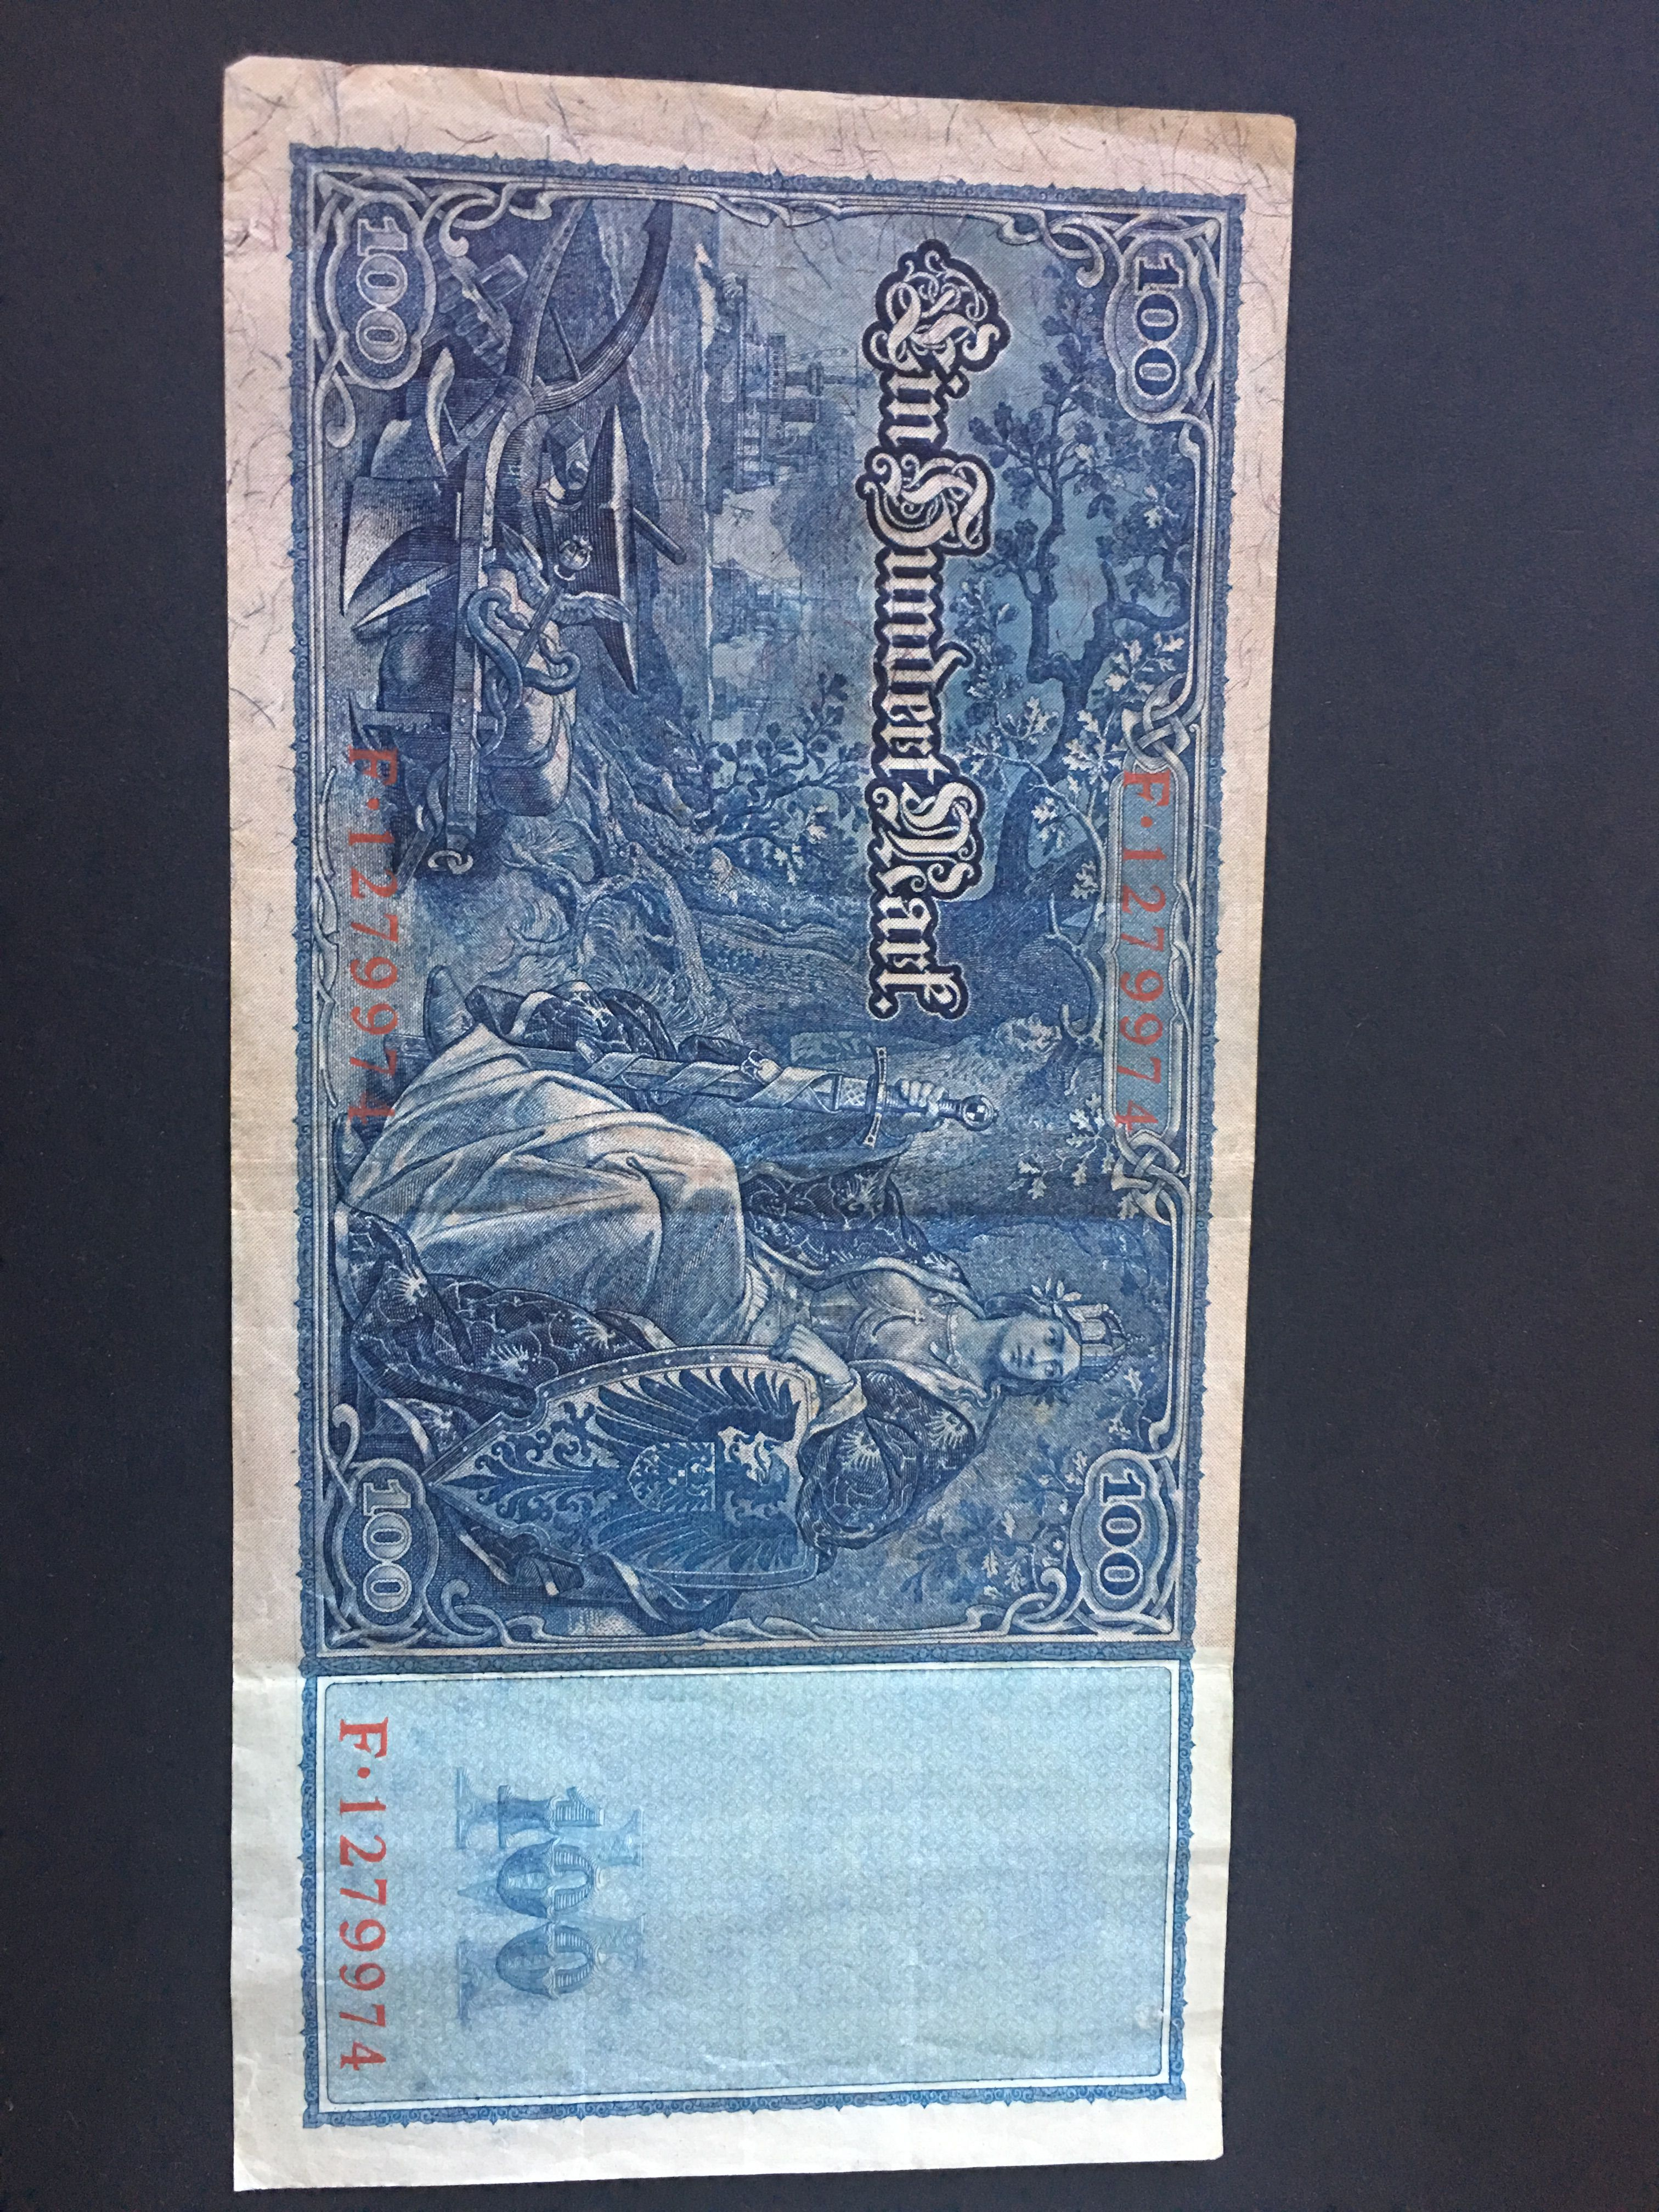 Germany 100 mark 1910 Bank notes, The 100